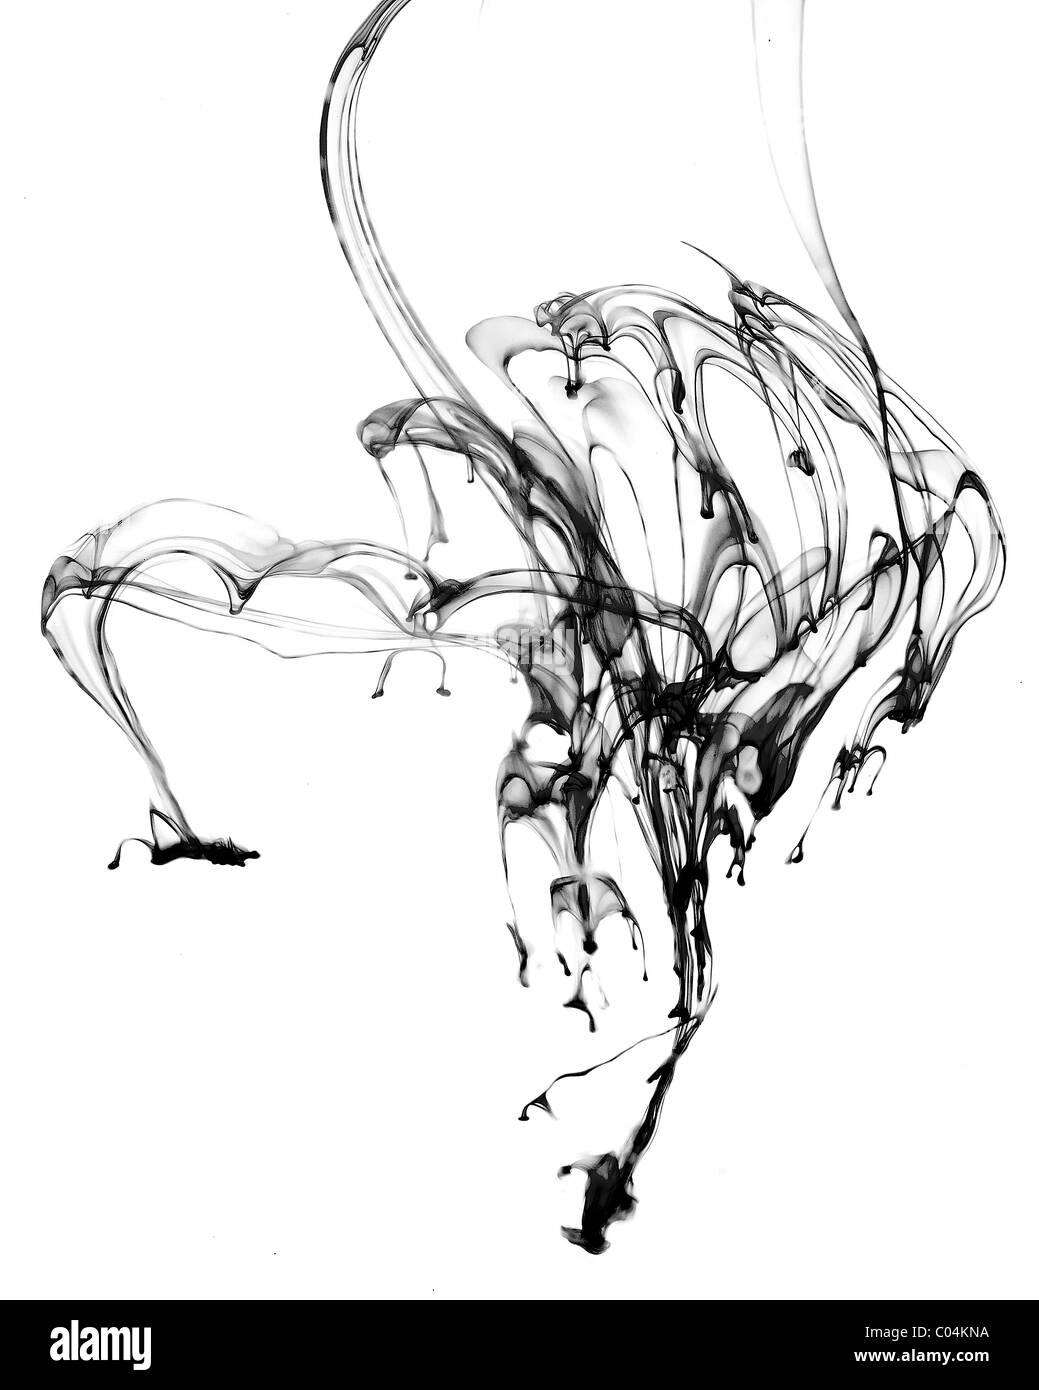 ink underwater in black and white - Stock Image